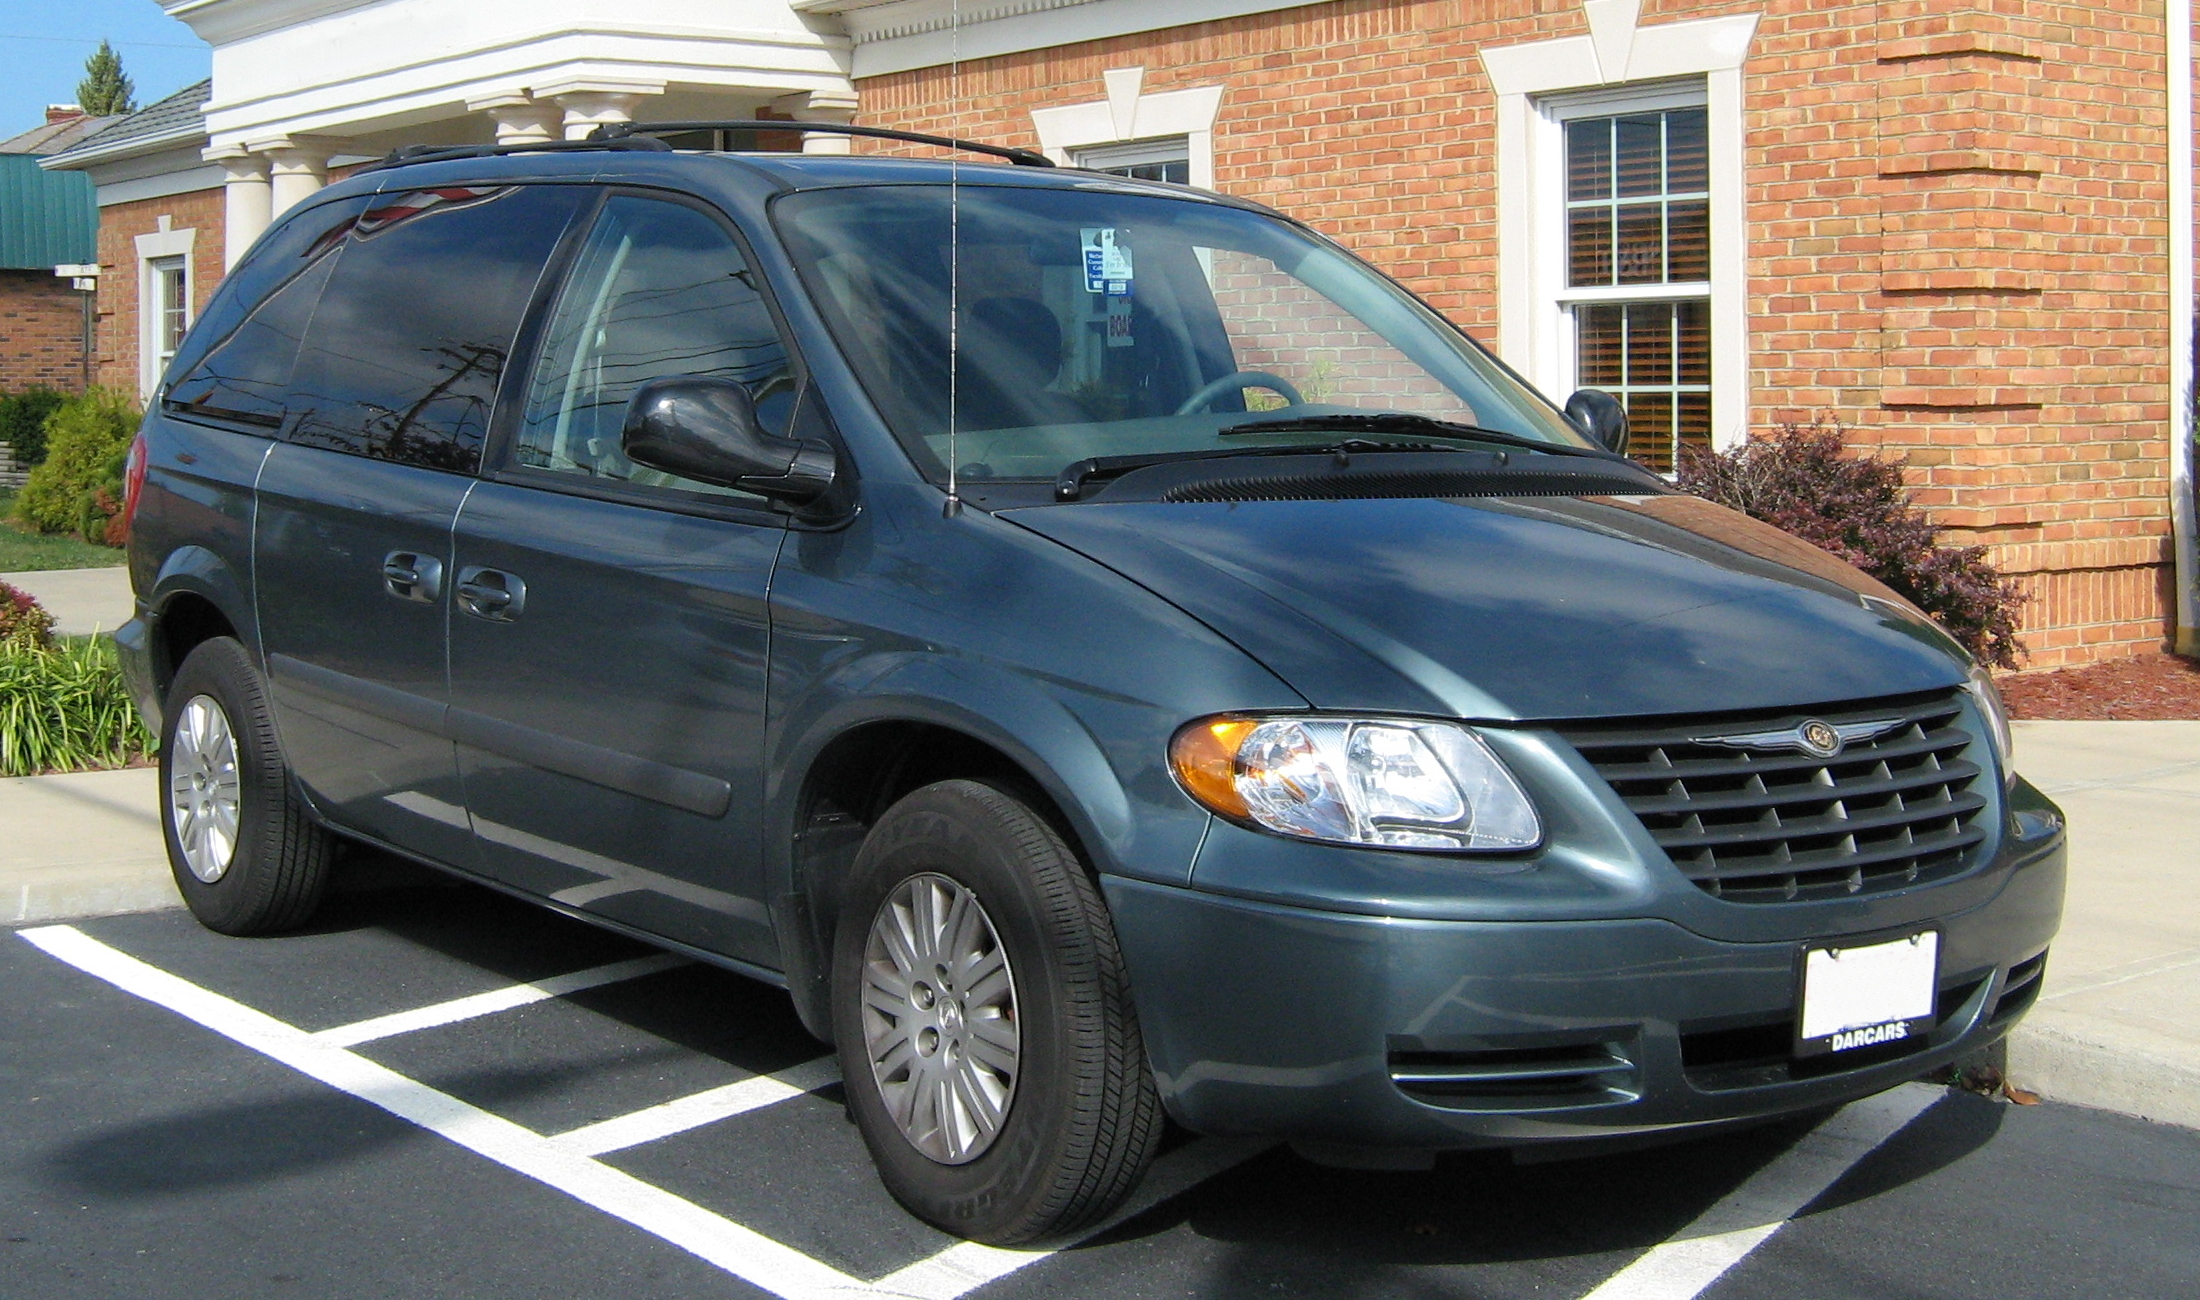 U.S. NHTSA to probe engine stalls on 2007 Chrysler minivans